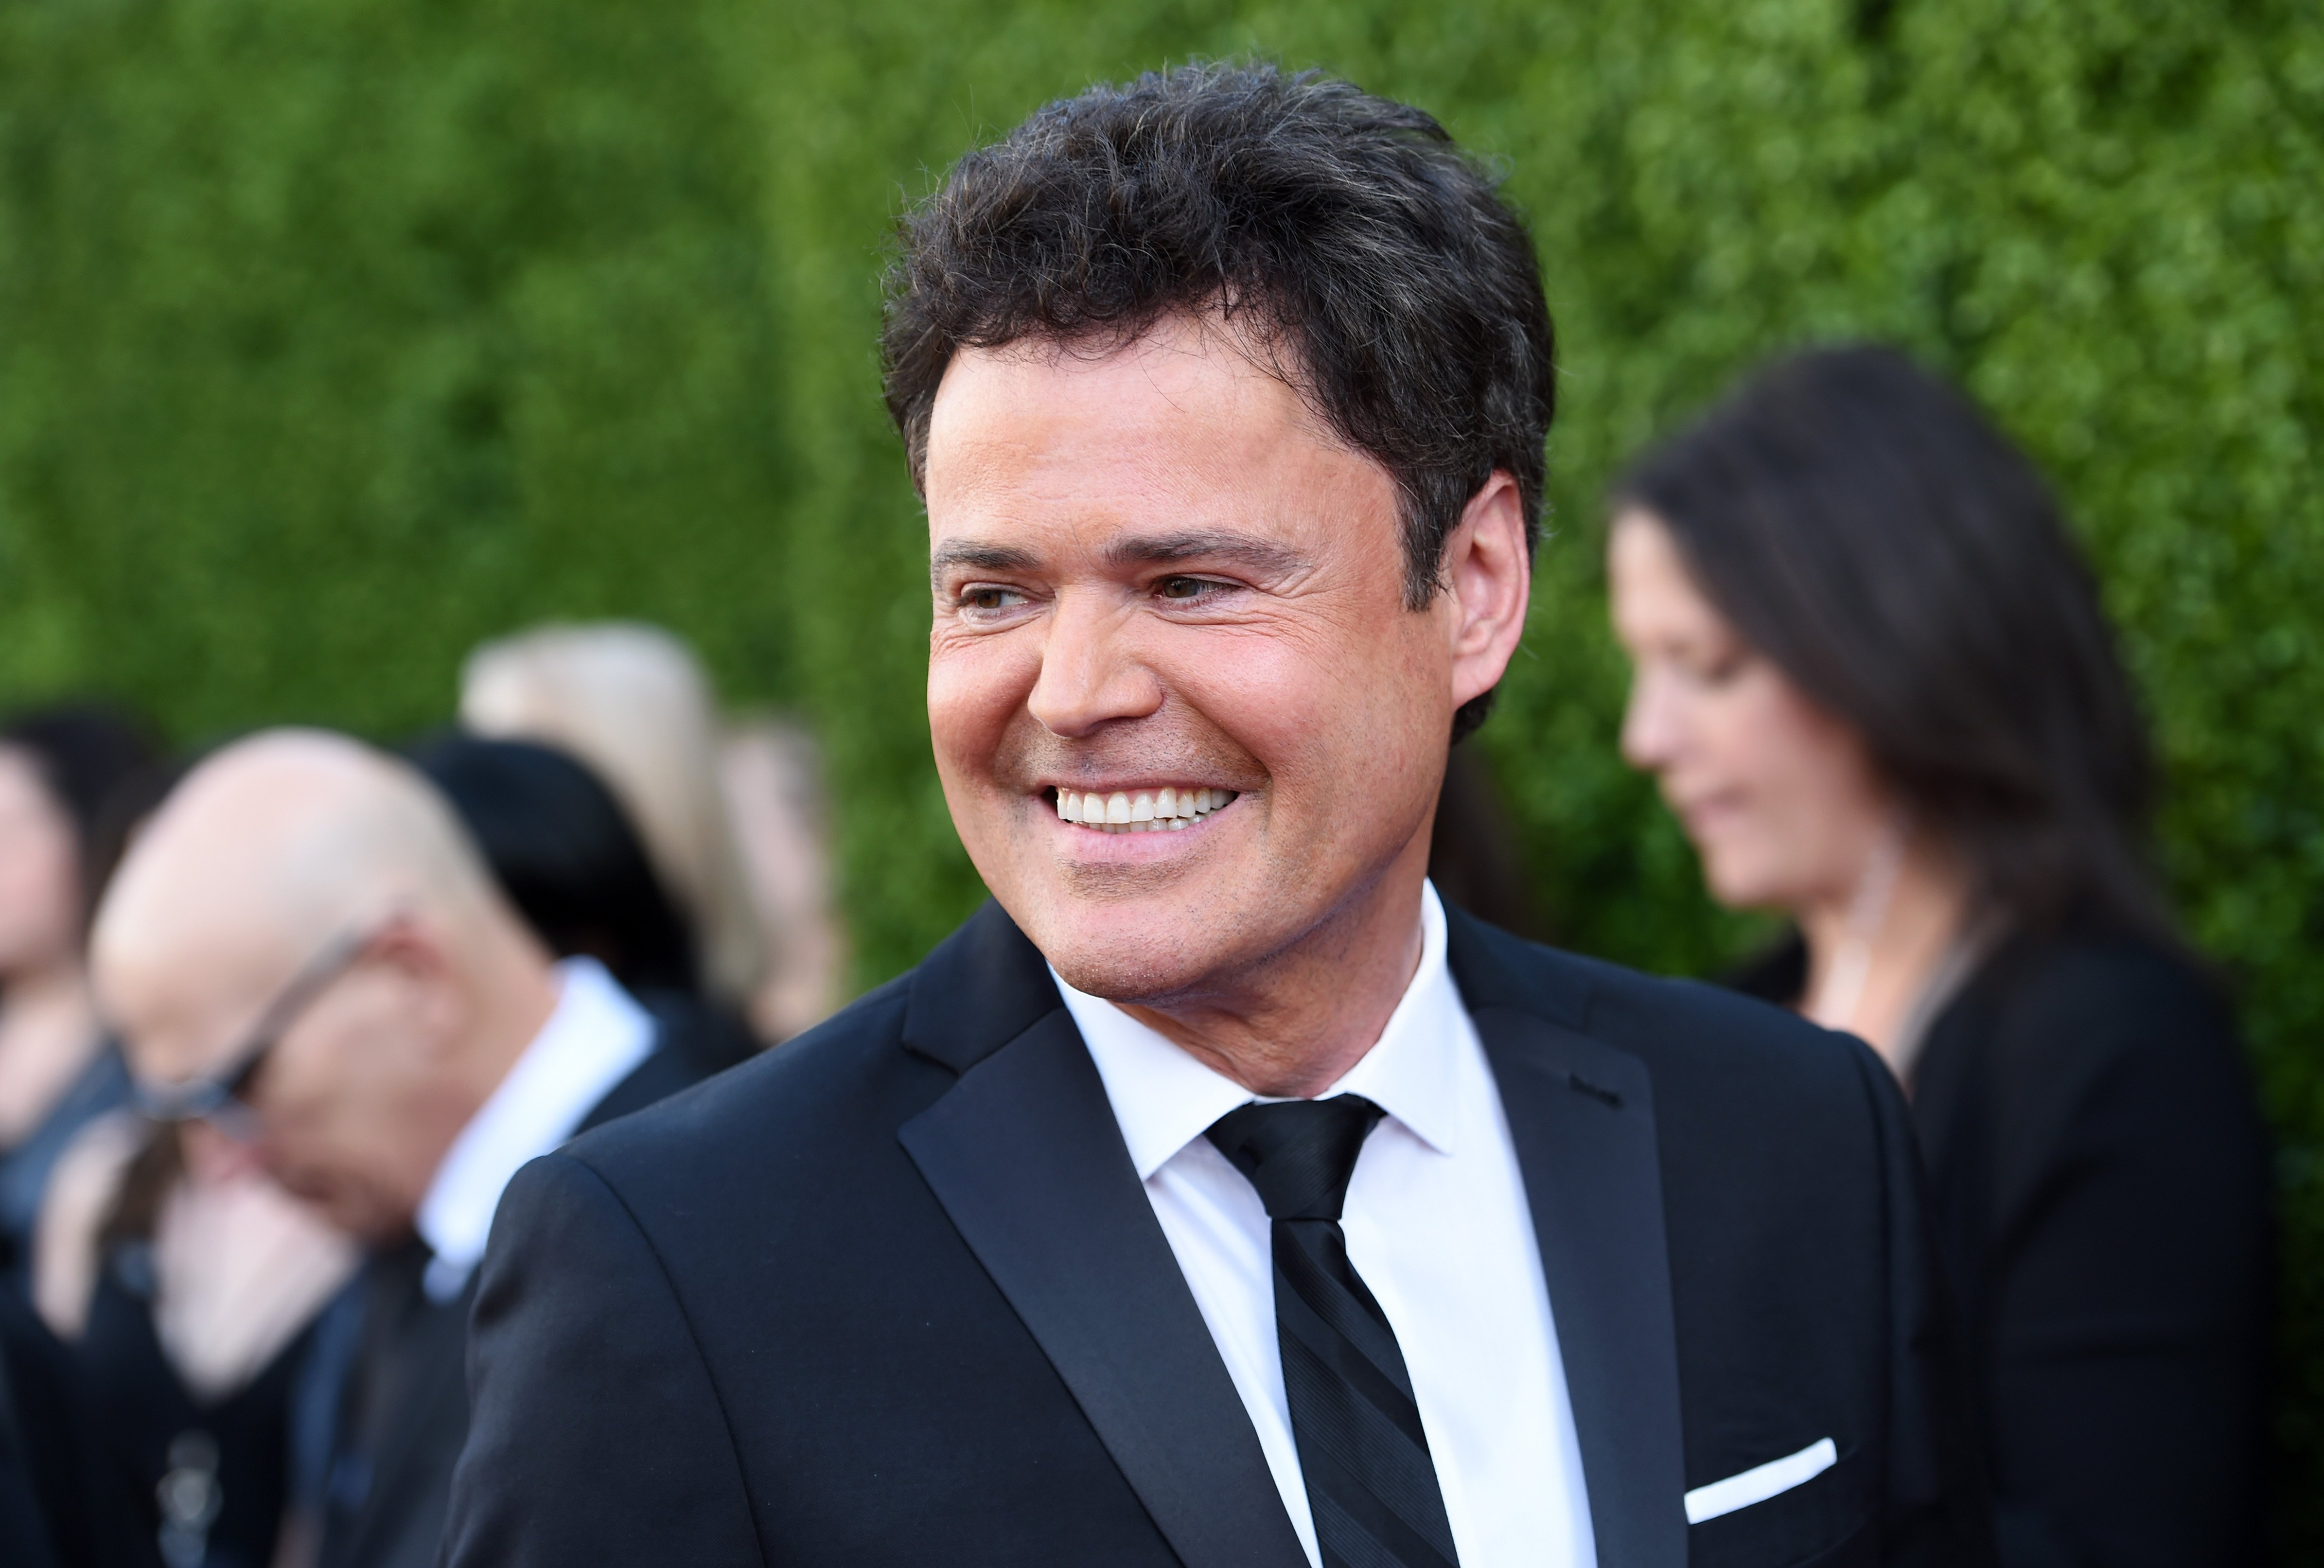 Image Credits: Getty Images / Amanda Edwards / WireImage | Singer Donny Osmond arrives at the 2015 TV LAND Awards at the Saban Theatre on April 11, 2015 in Beverly Hills, California.